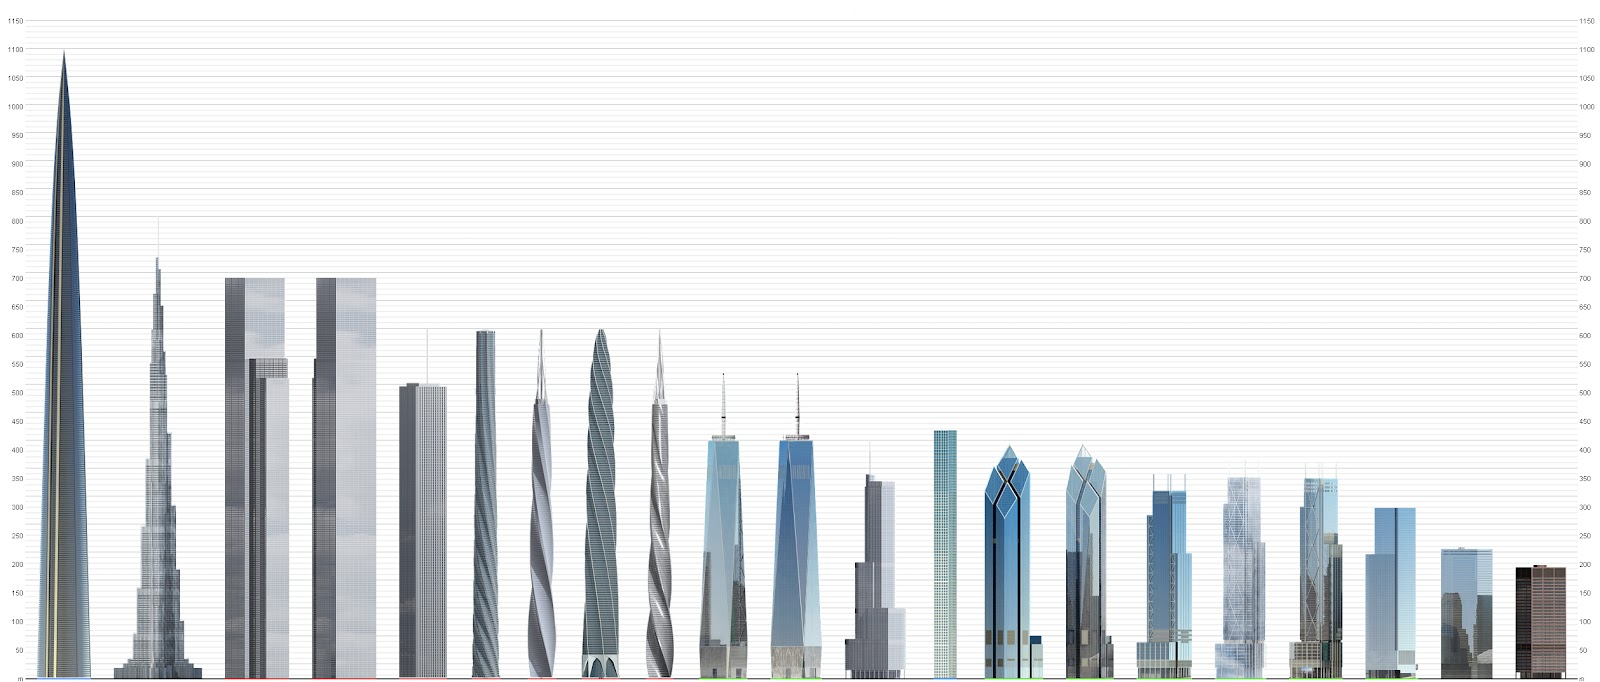 worlds tallest building in the world - Future Tallest Building In The World Under Construction